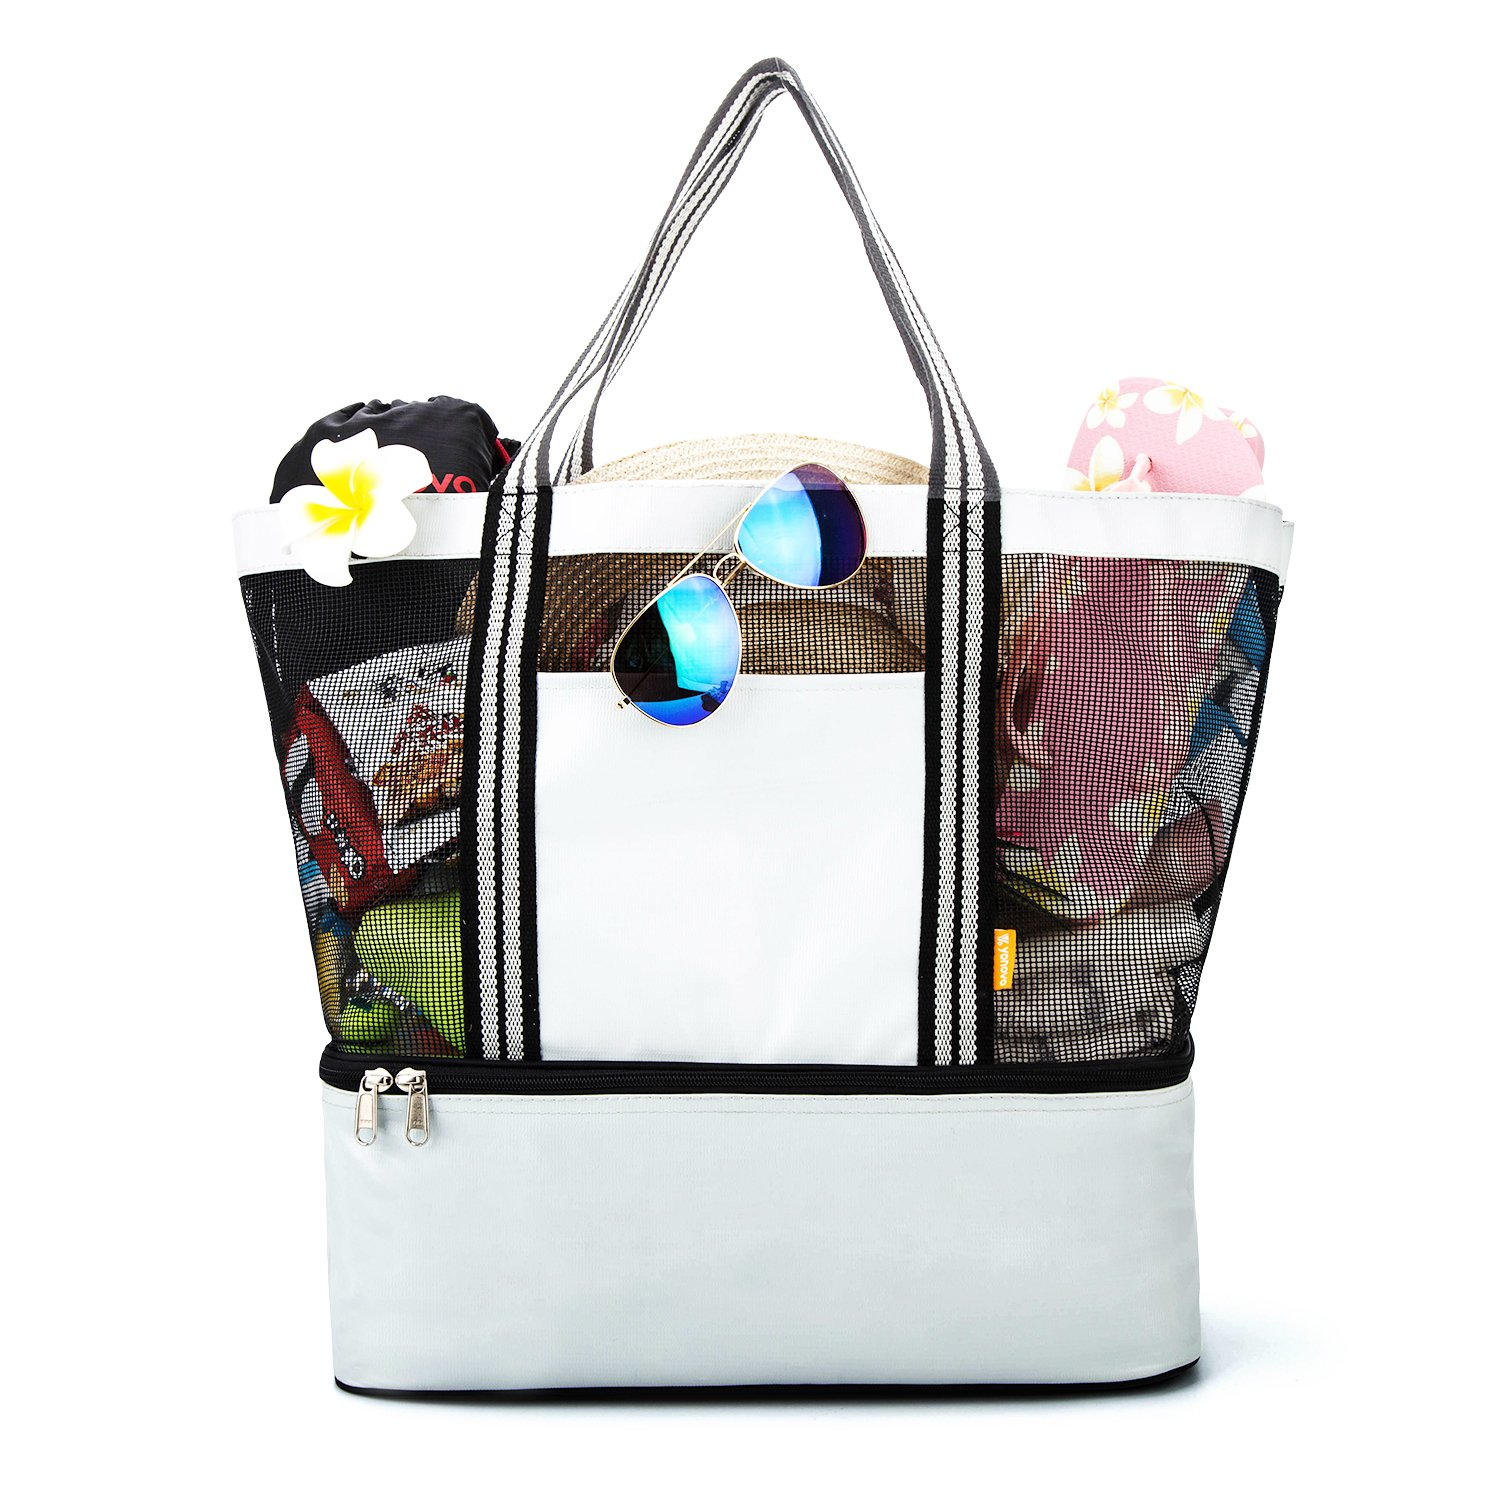 YONOVO Mesh Beach Tote Bag with Cooler,Leak-Proof Insulated with Even Bottom(Ivory)